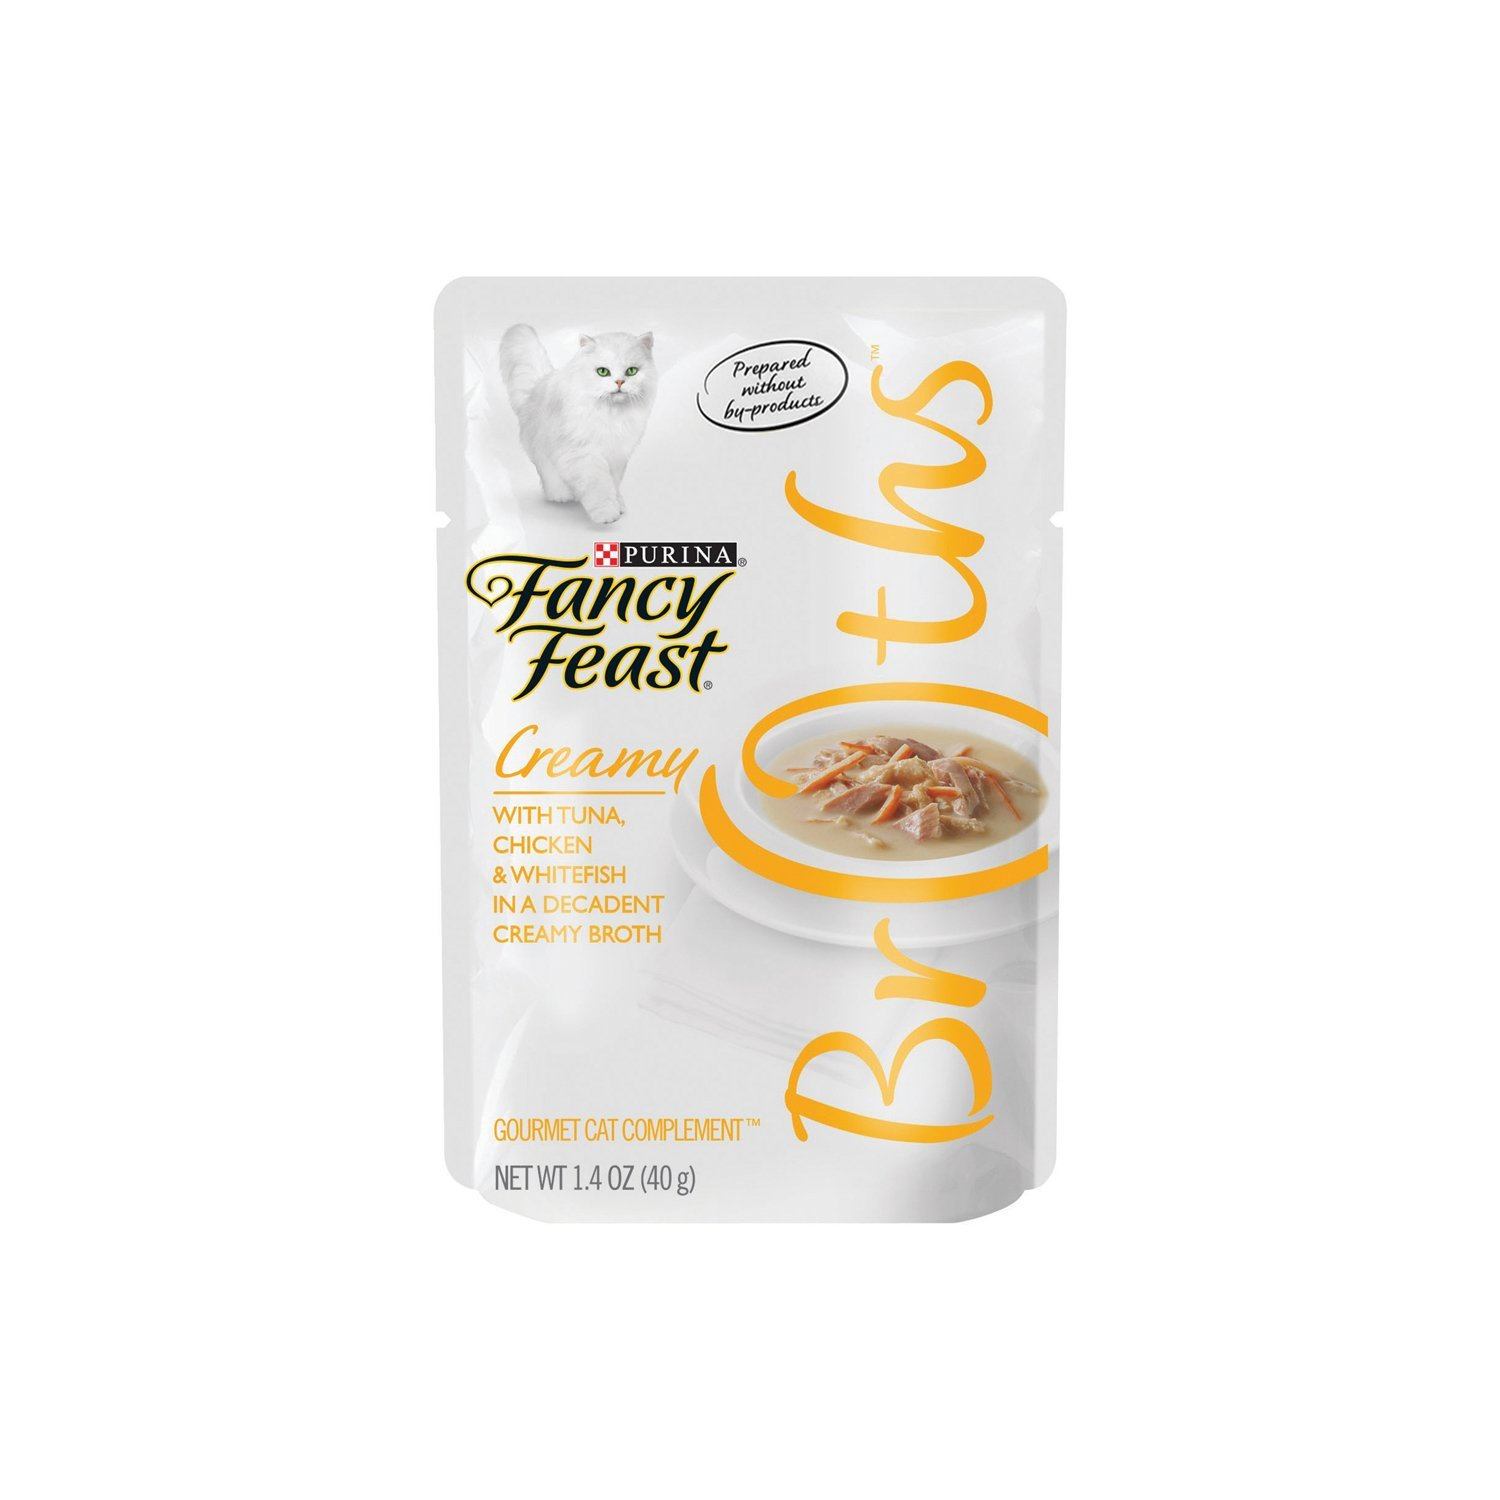 Purina Fancy Feast Broths Creamy Gourmet Cat Complement Multipack - (16) 1.4 oz. Pouches